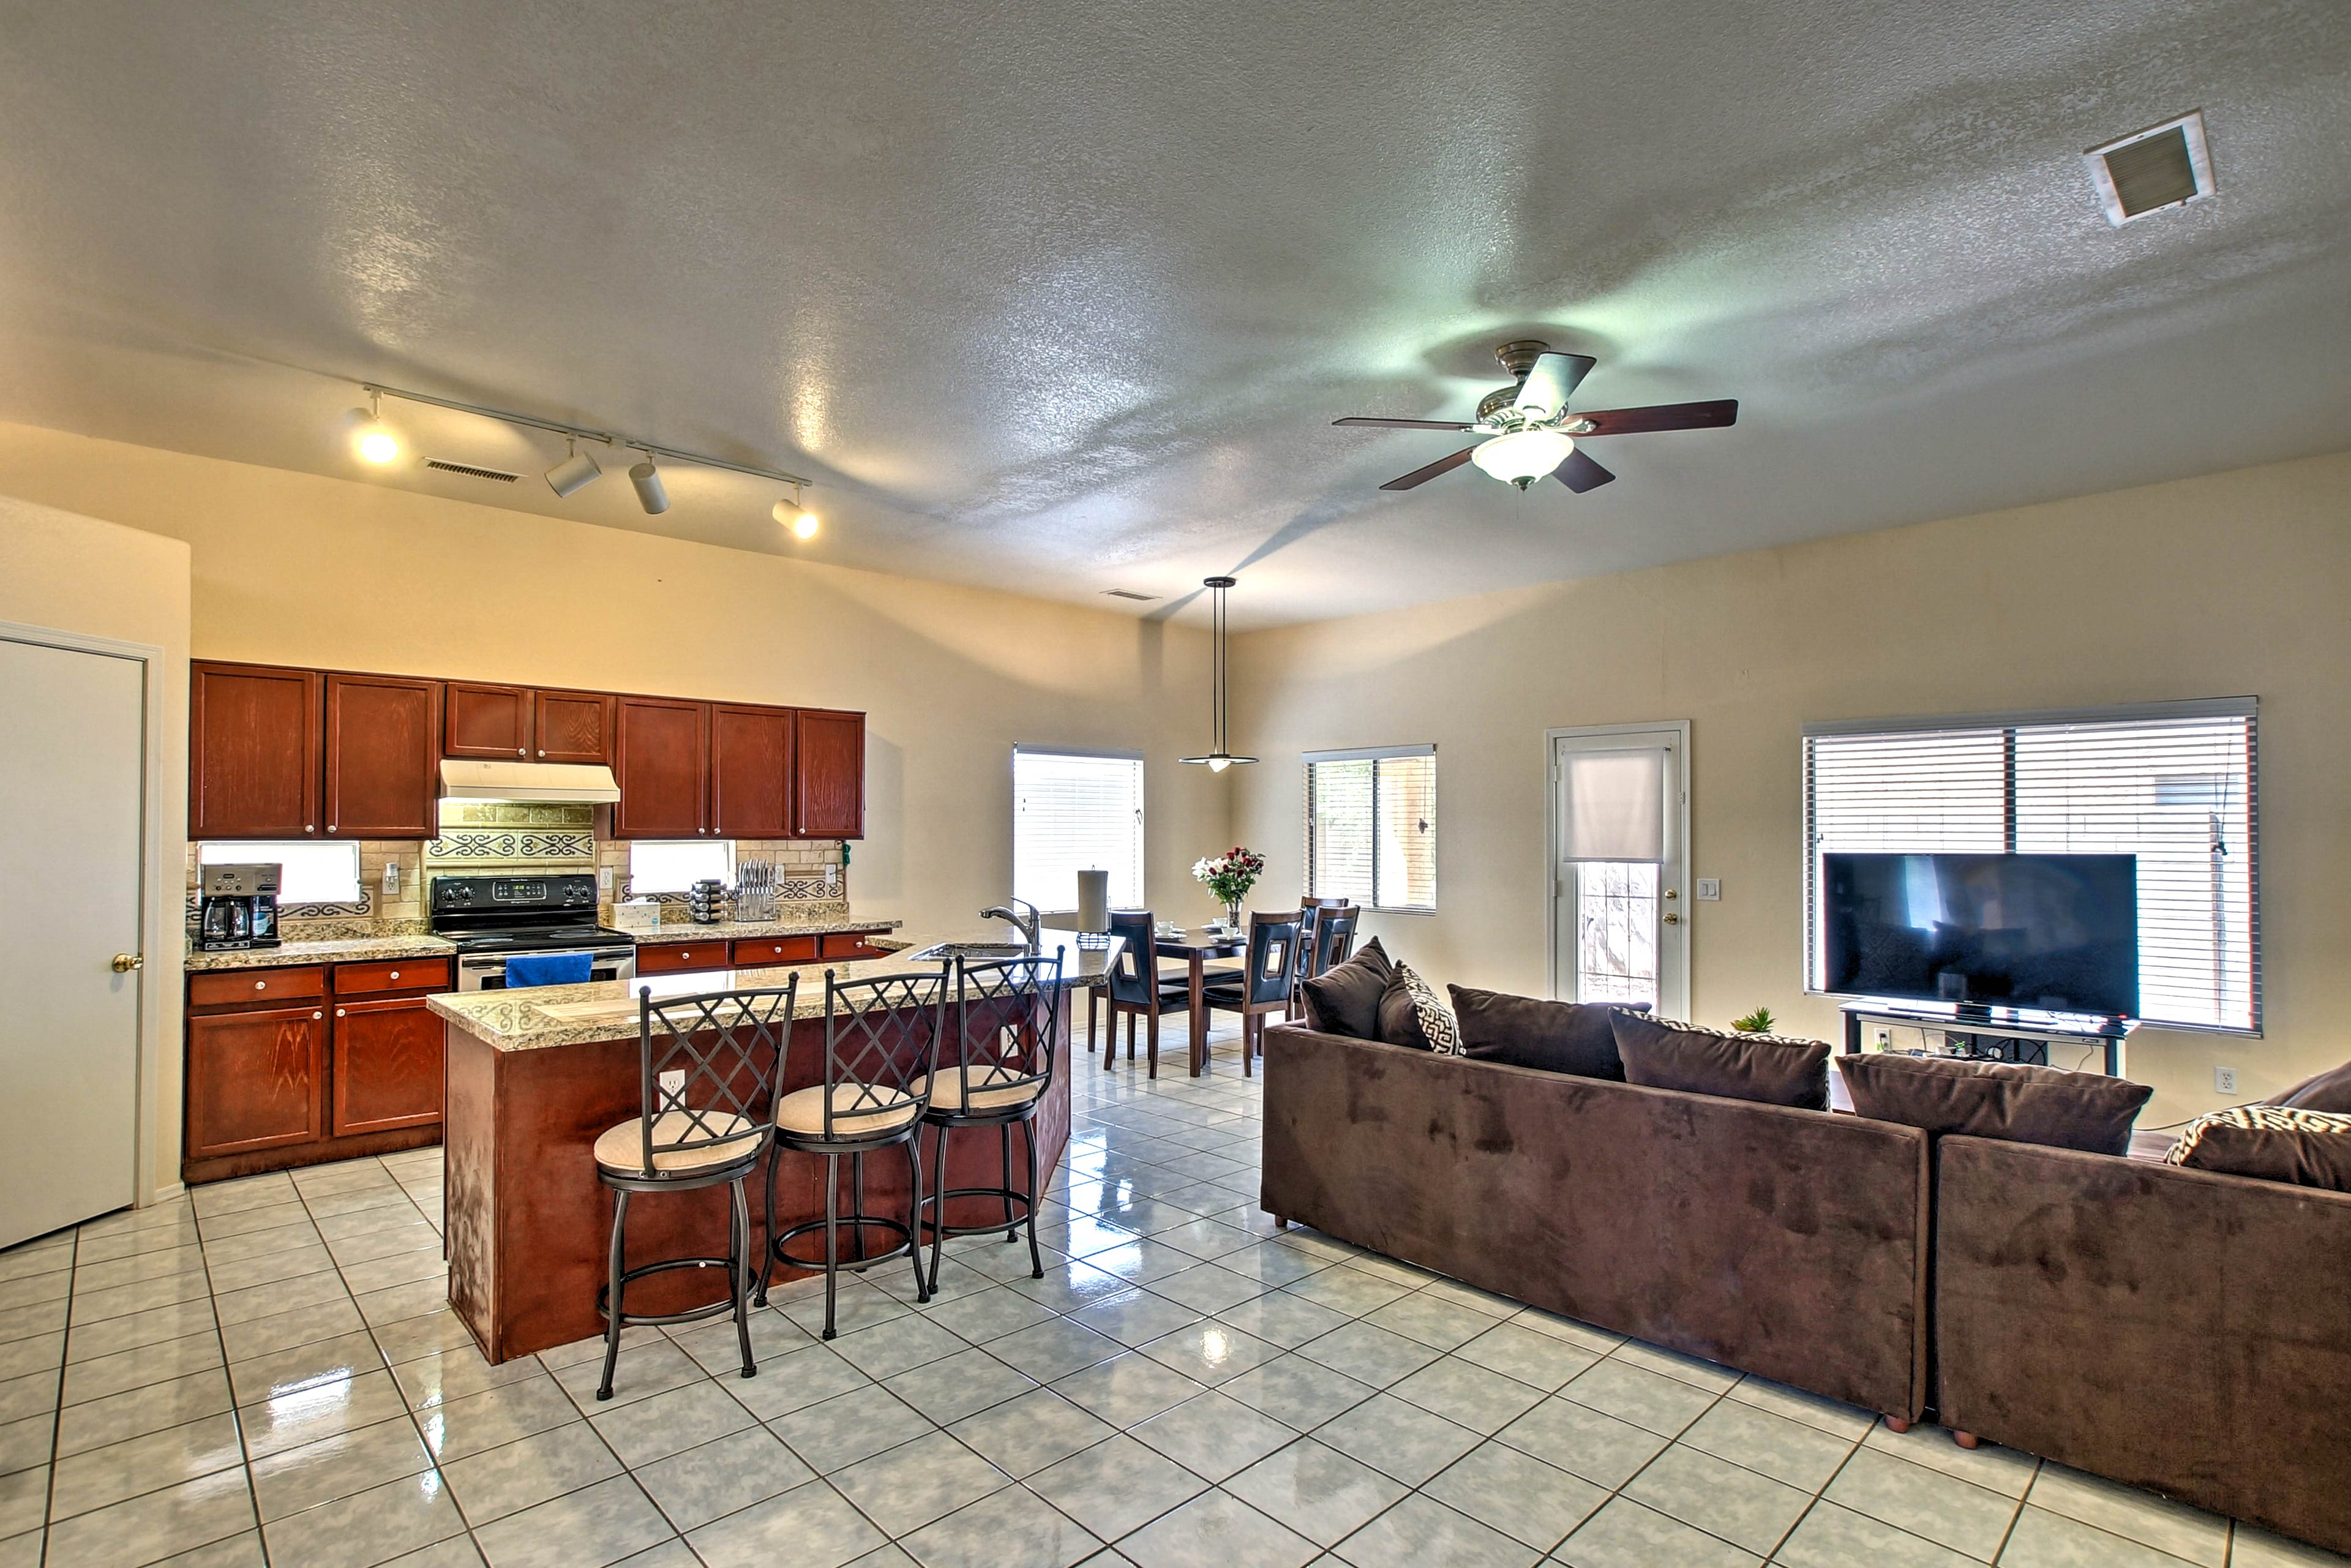 The living room has everything you need for your Phoenix-area escape.